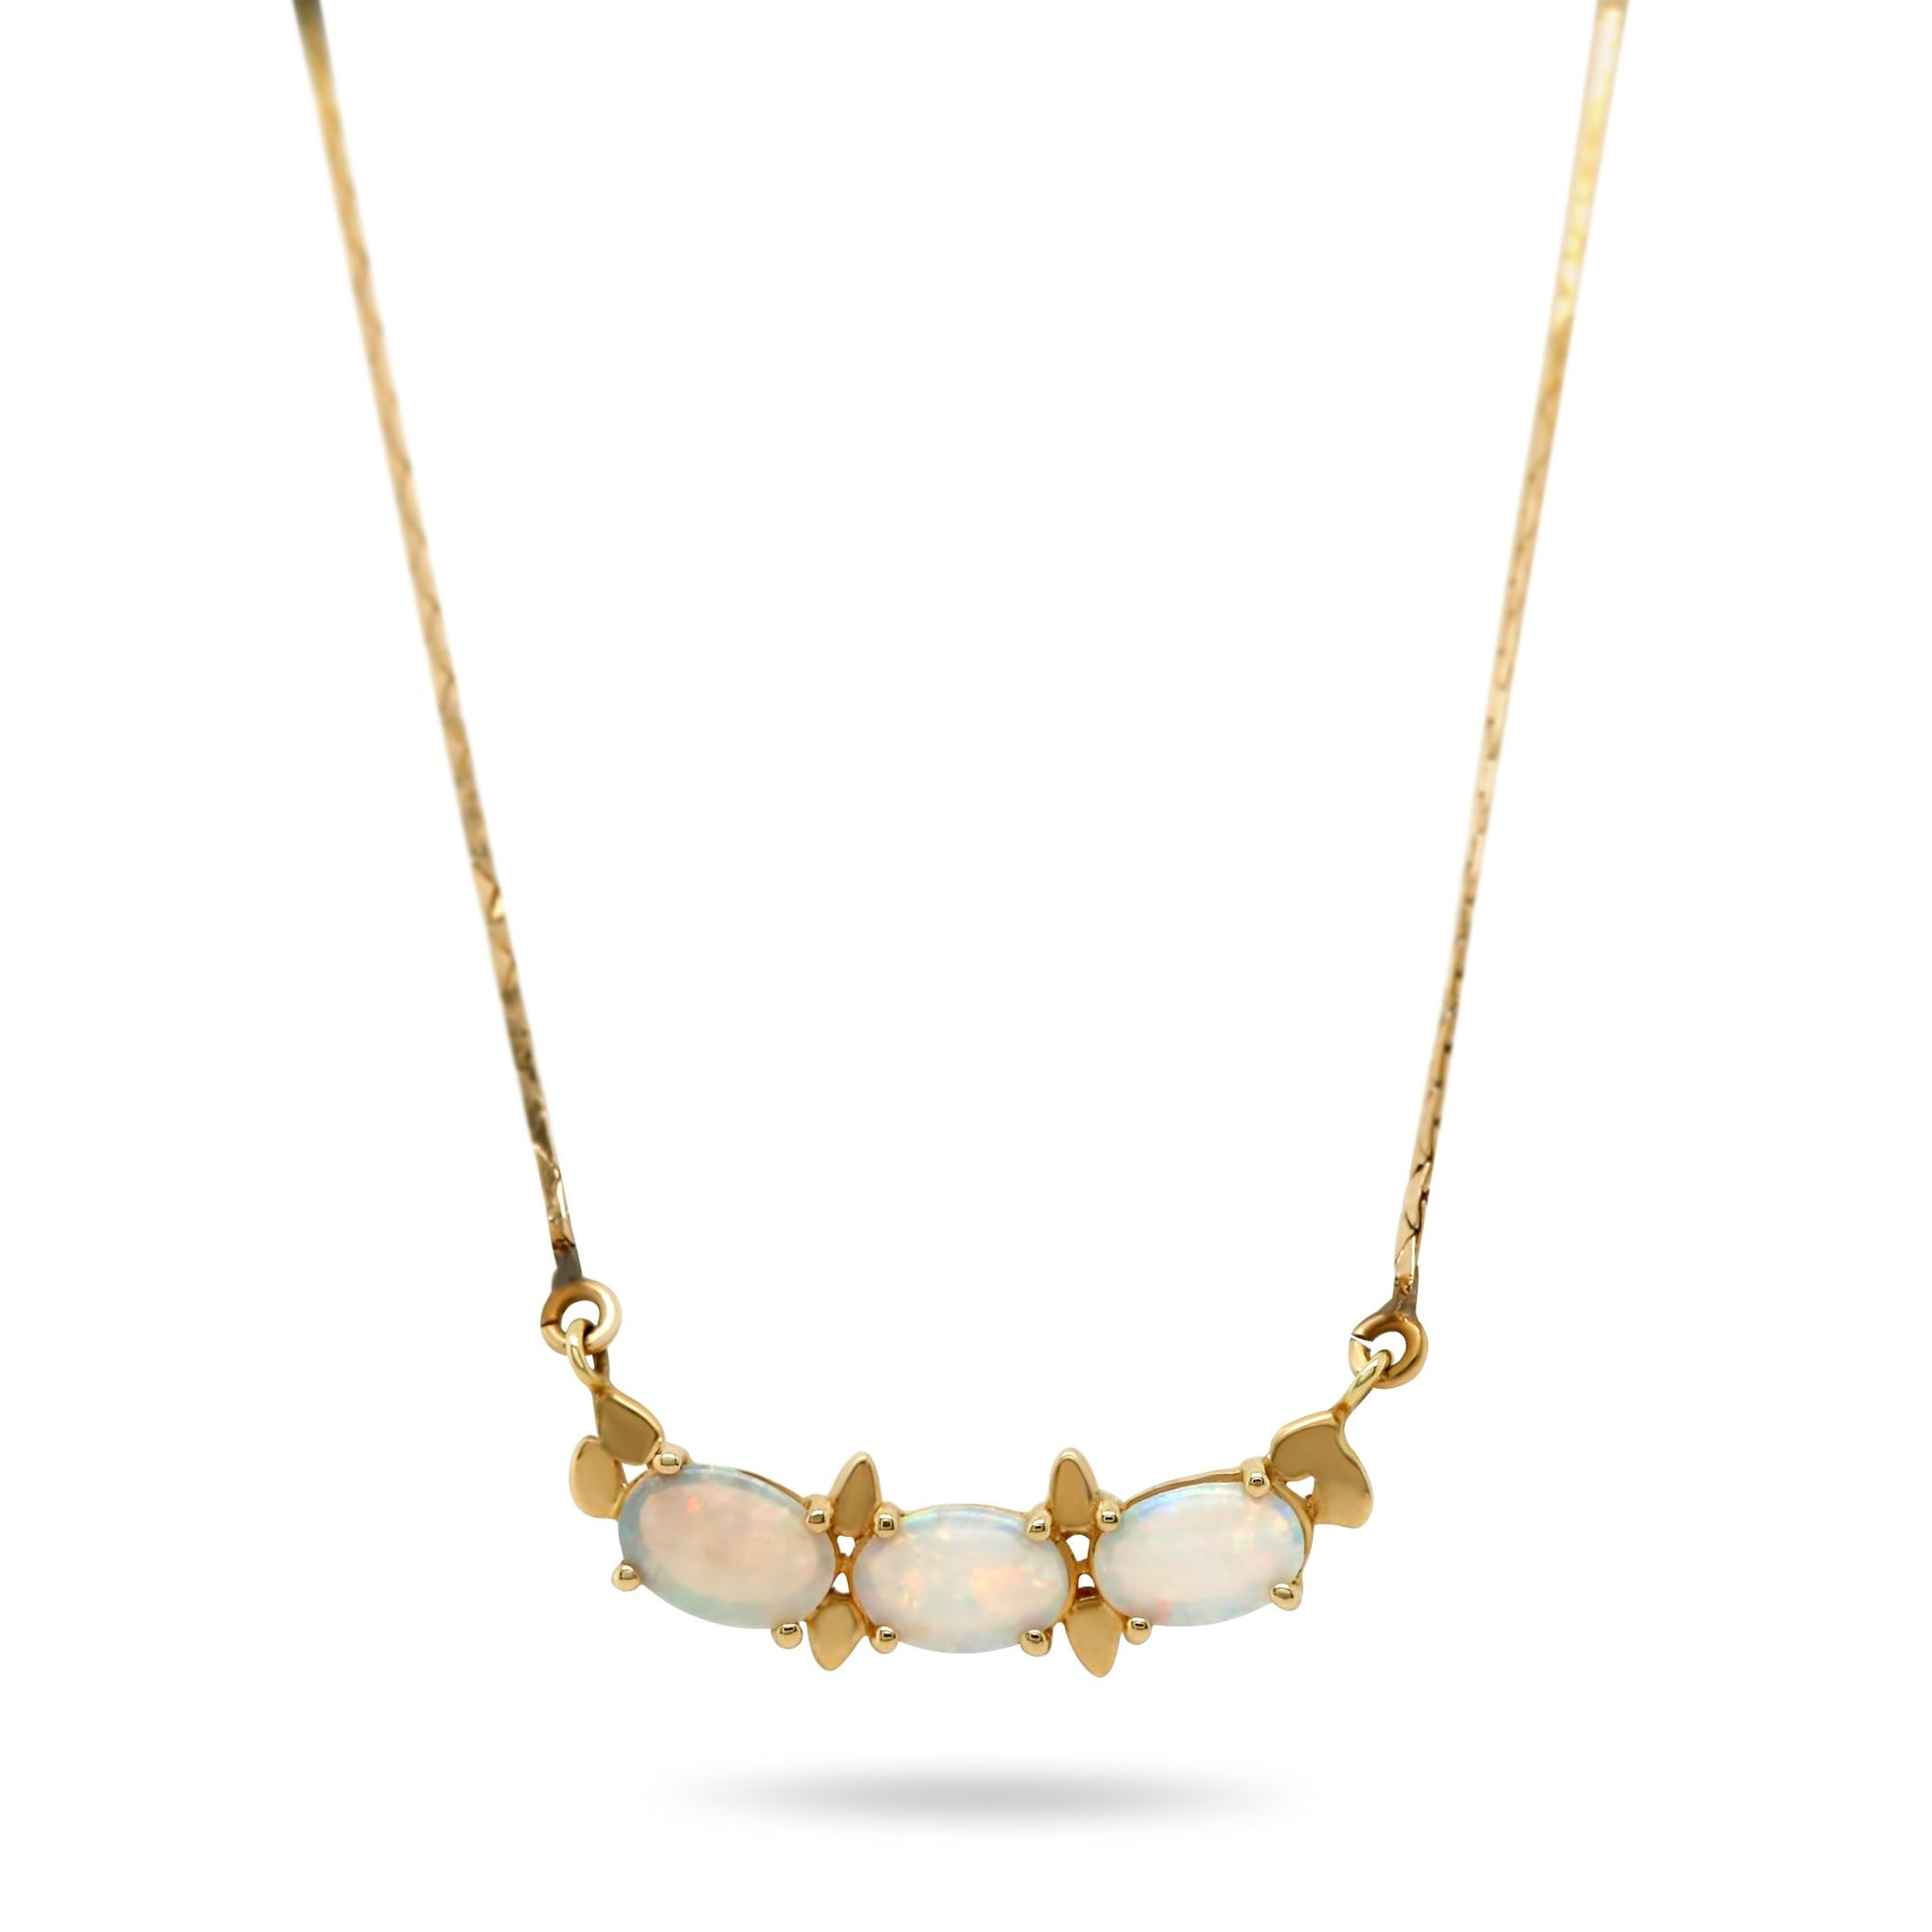 yellow gold three stone oval opal estate necklace with metal details and a 16in chain under 500